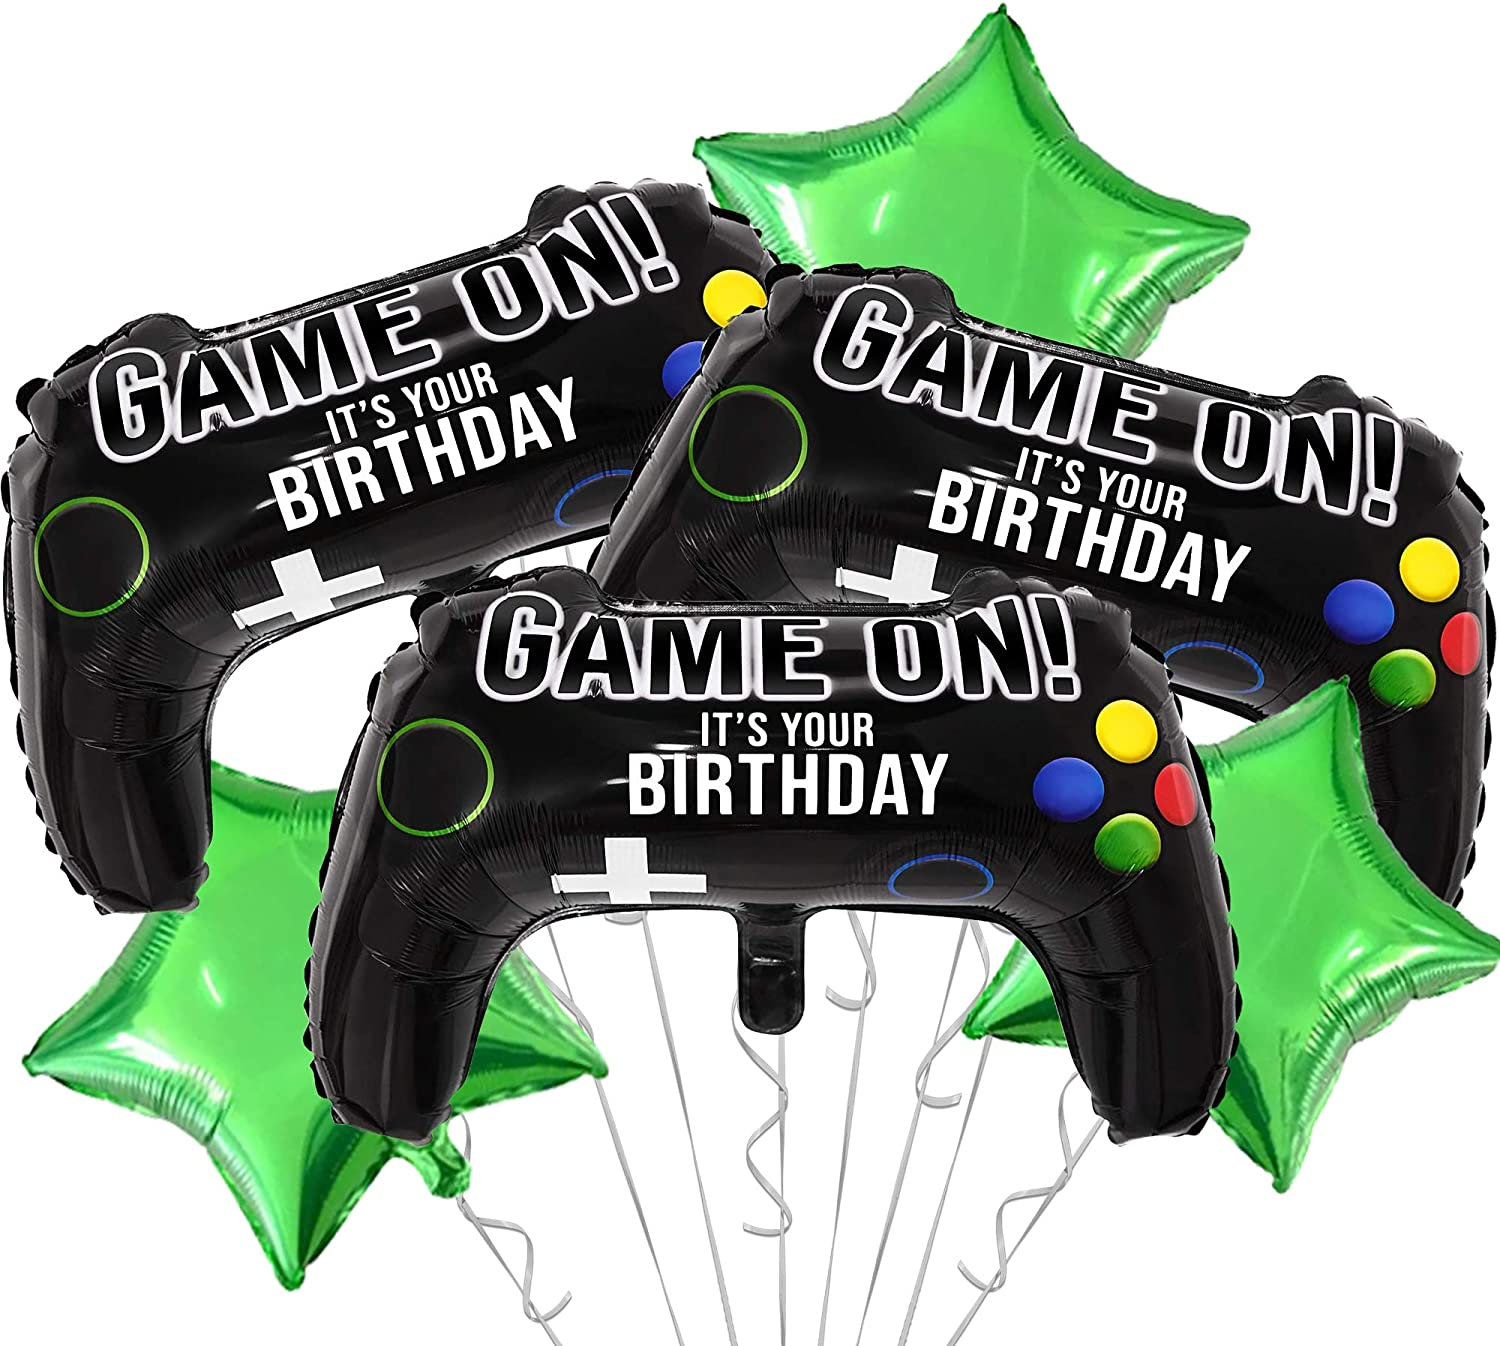 OMG Party Factory - Premium Video Game On Balloons Birthday Decorations for Gamers | Party Supplies for Boys Gaming Theme | Level Up Your Decor | Mylar Foil Balloon Set for Kids (Game On Premium Set)